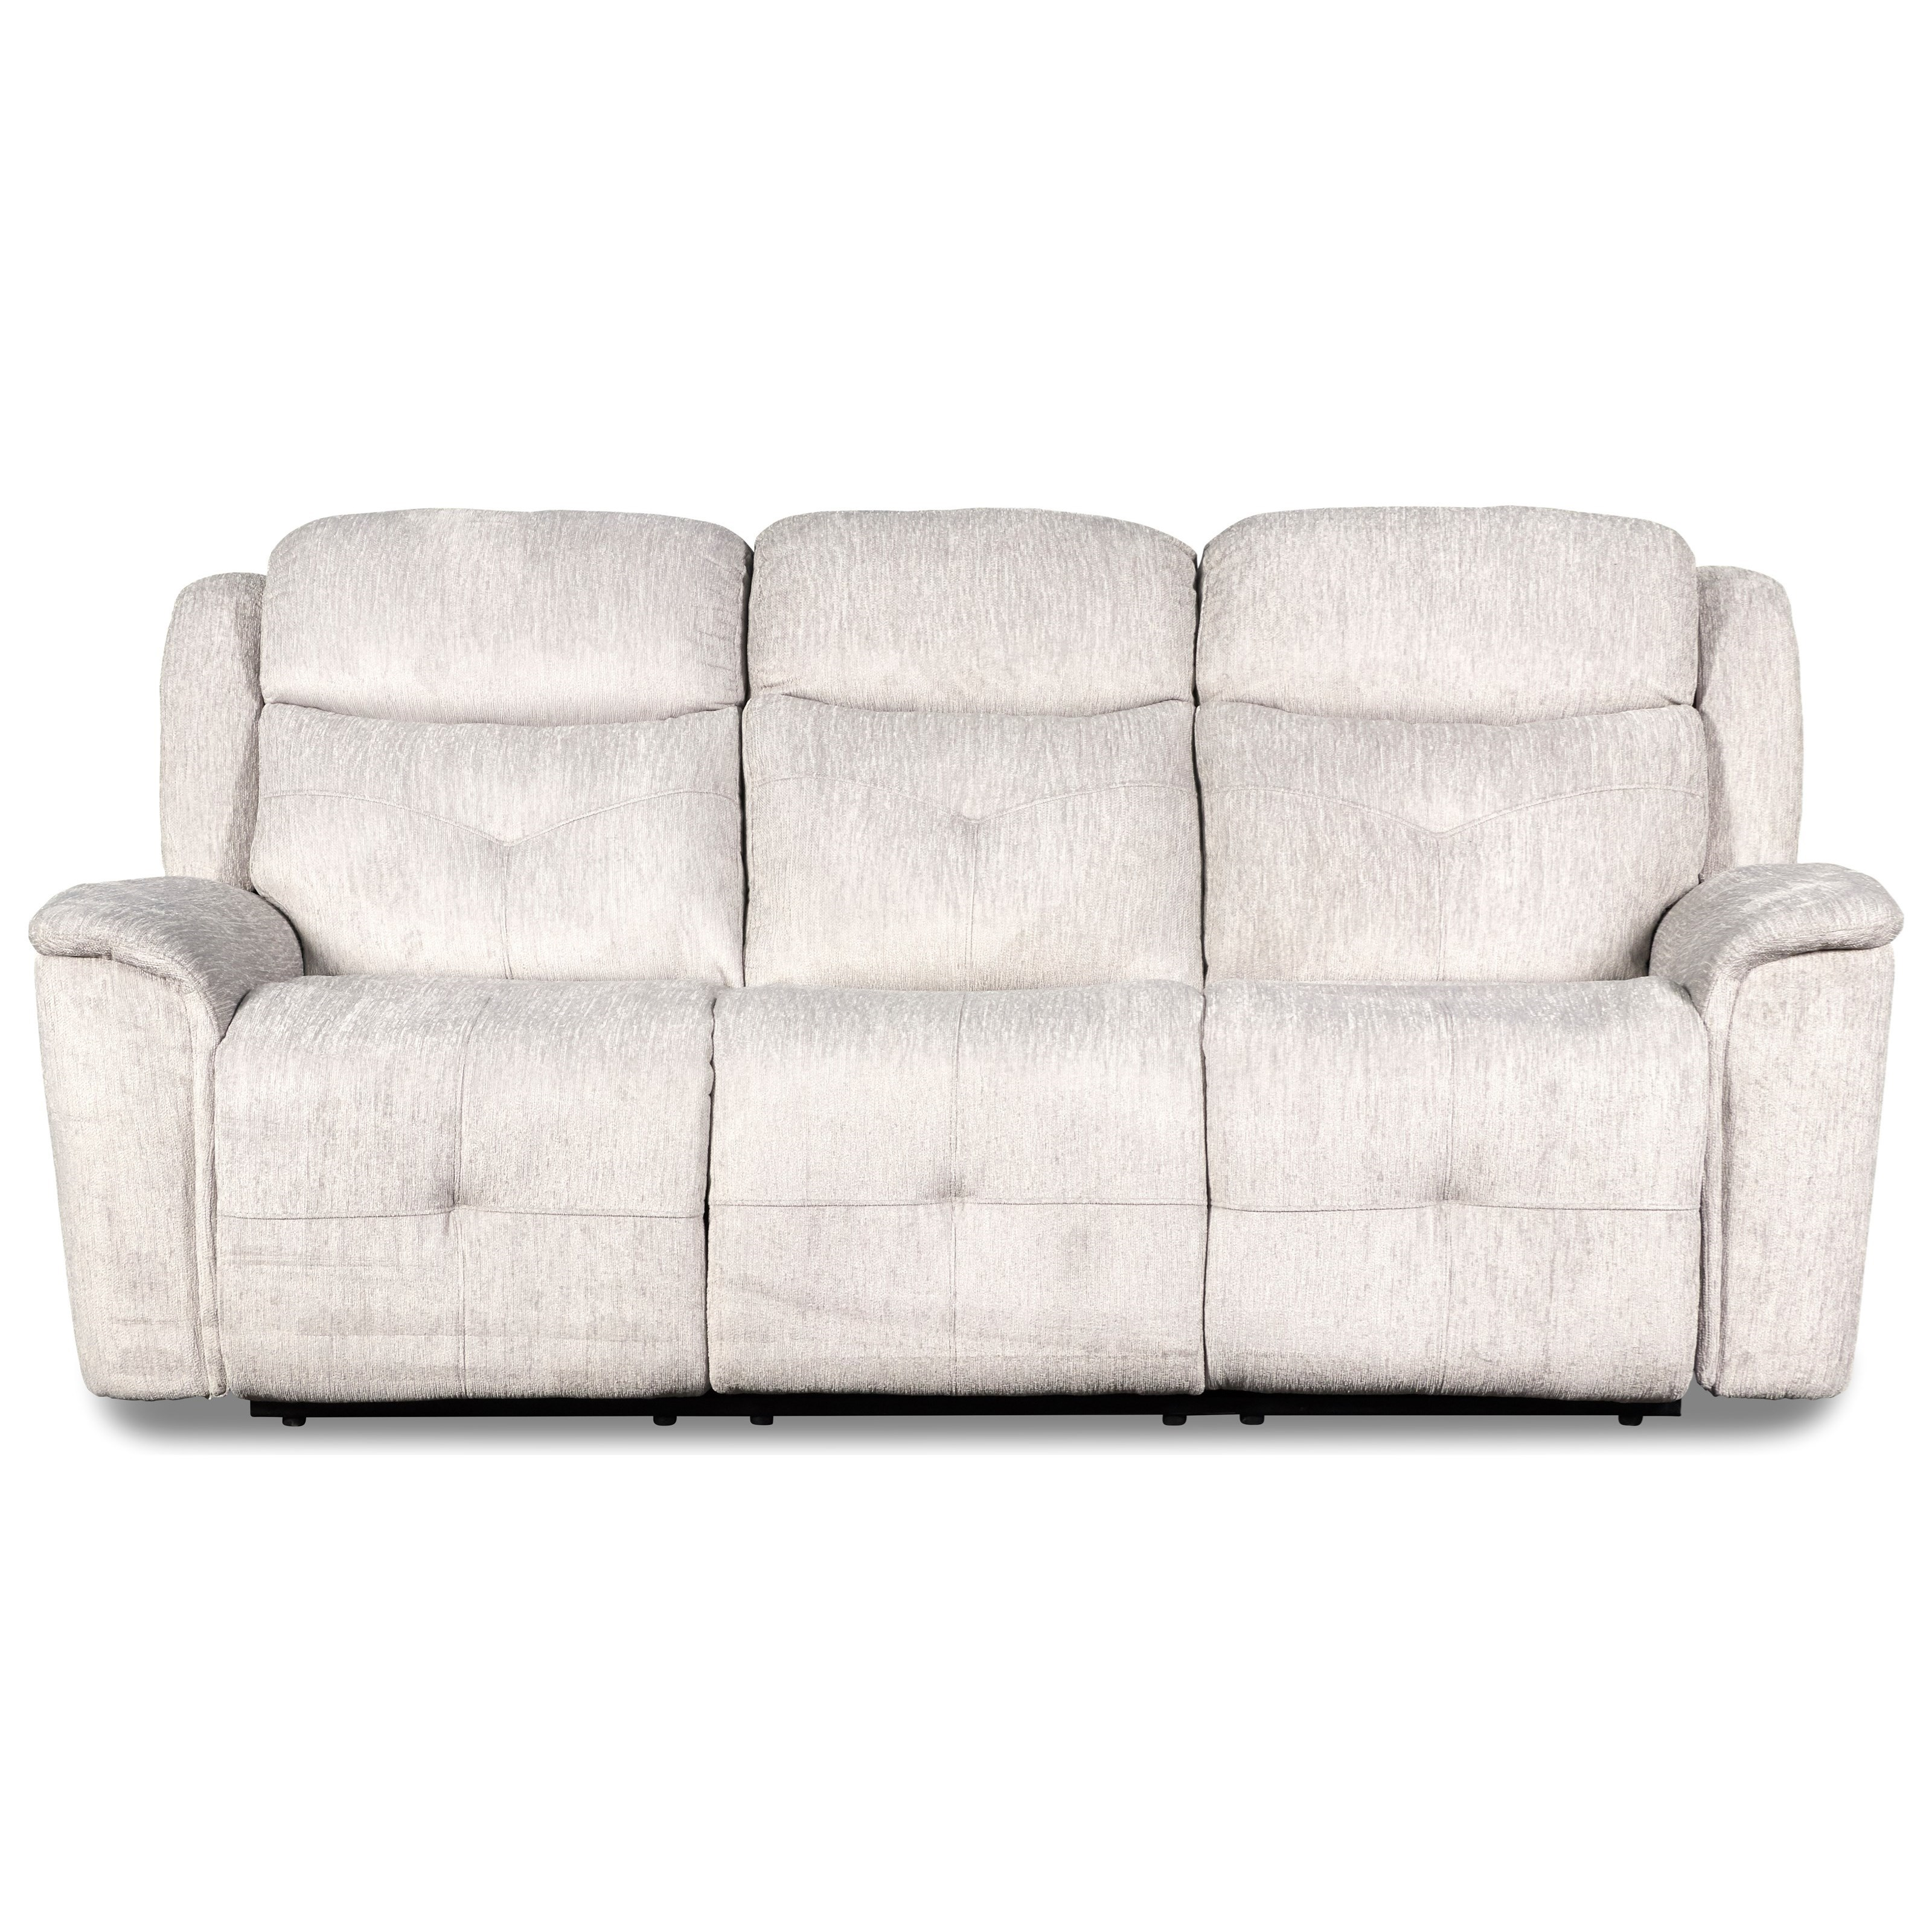 HAVANA Reclining Sofa by New Classic at Beck's Furniture